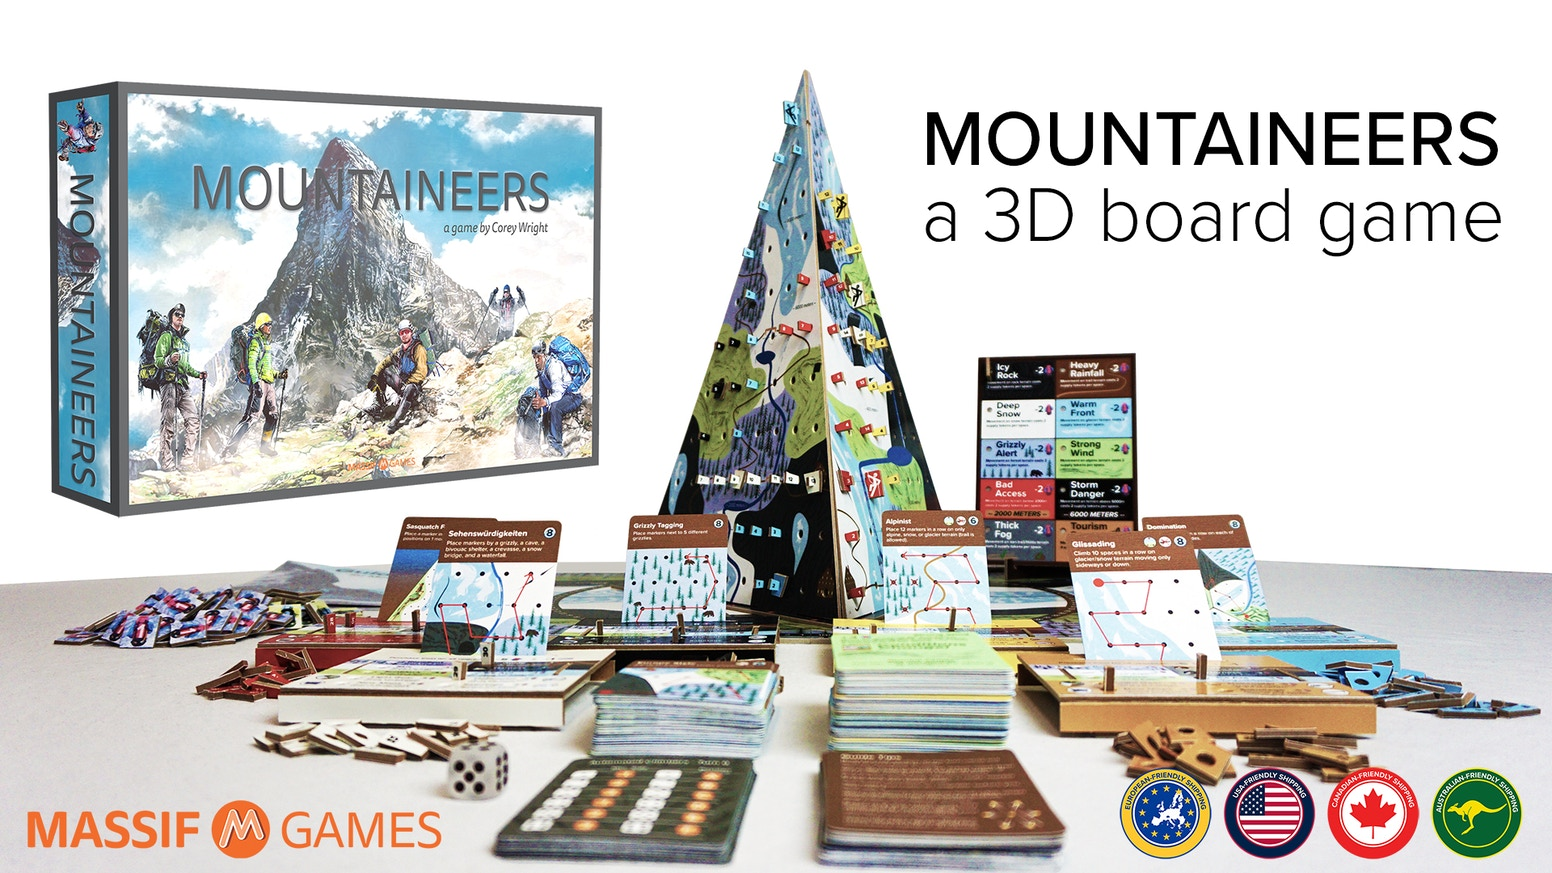 Click the link below to learn more and/or purchase Mountaineers from our website!